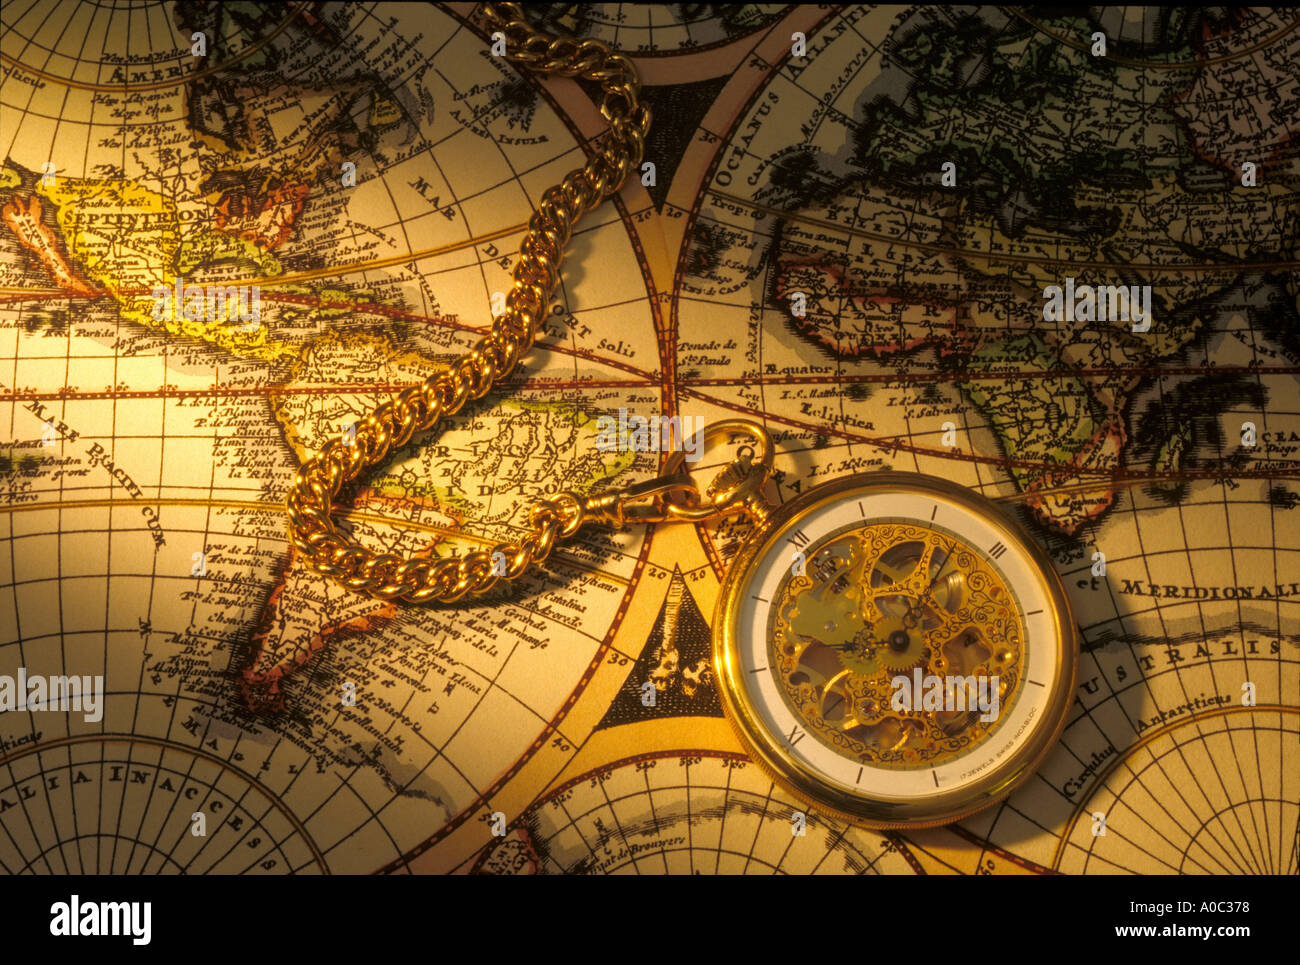 Old world map stock photos old world map stock images alamy pocket watch on old world map stock image gumiabroncs Choice Image